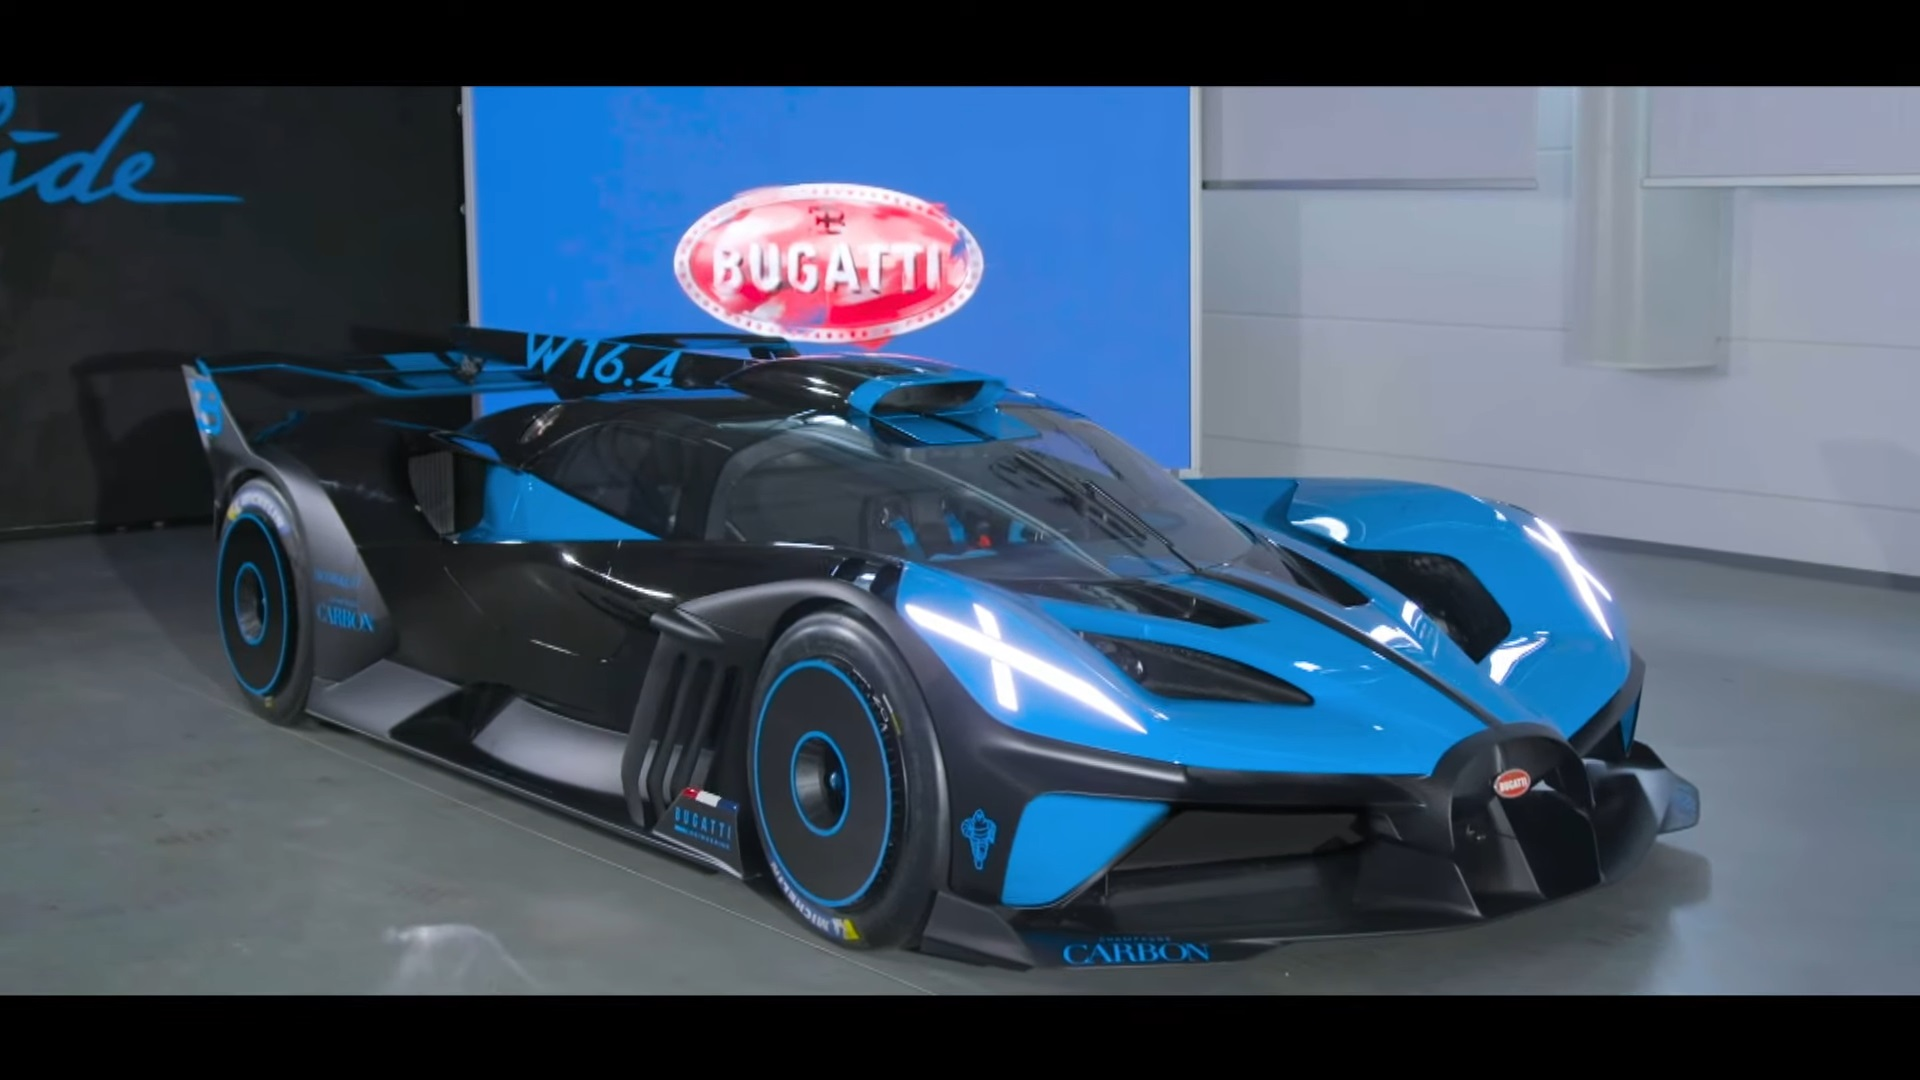 1 825 Hp Bugatti Bolide Track Car Revealed Limited Production Considered Autoevolution